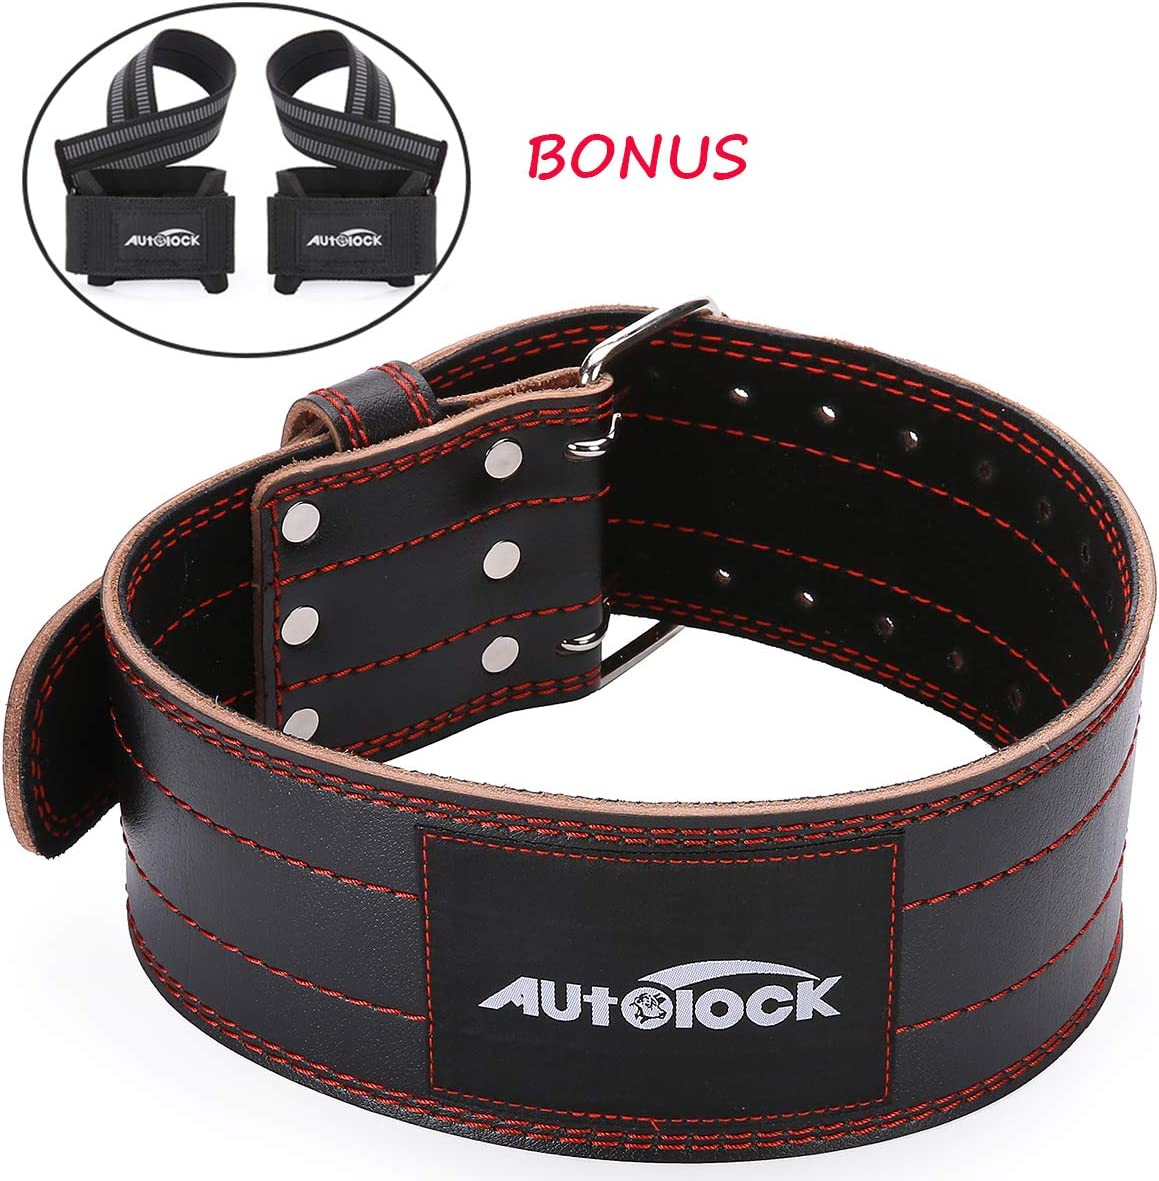 Autolock Weight Lifting Belt for Men and Women, Genuine Leather 4 Wide Workout Belt with Double Prong Buckle, Stabilizing Lower Back Support for Weightlifting, Squats and Deadlifts